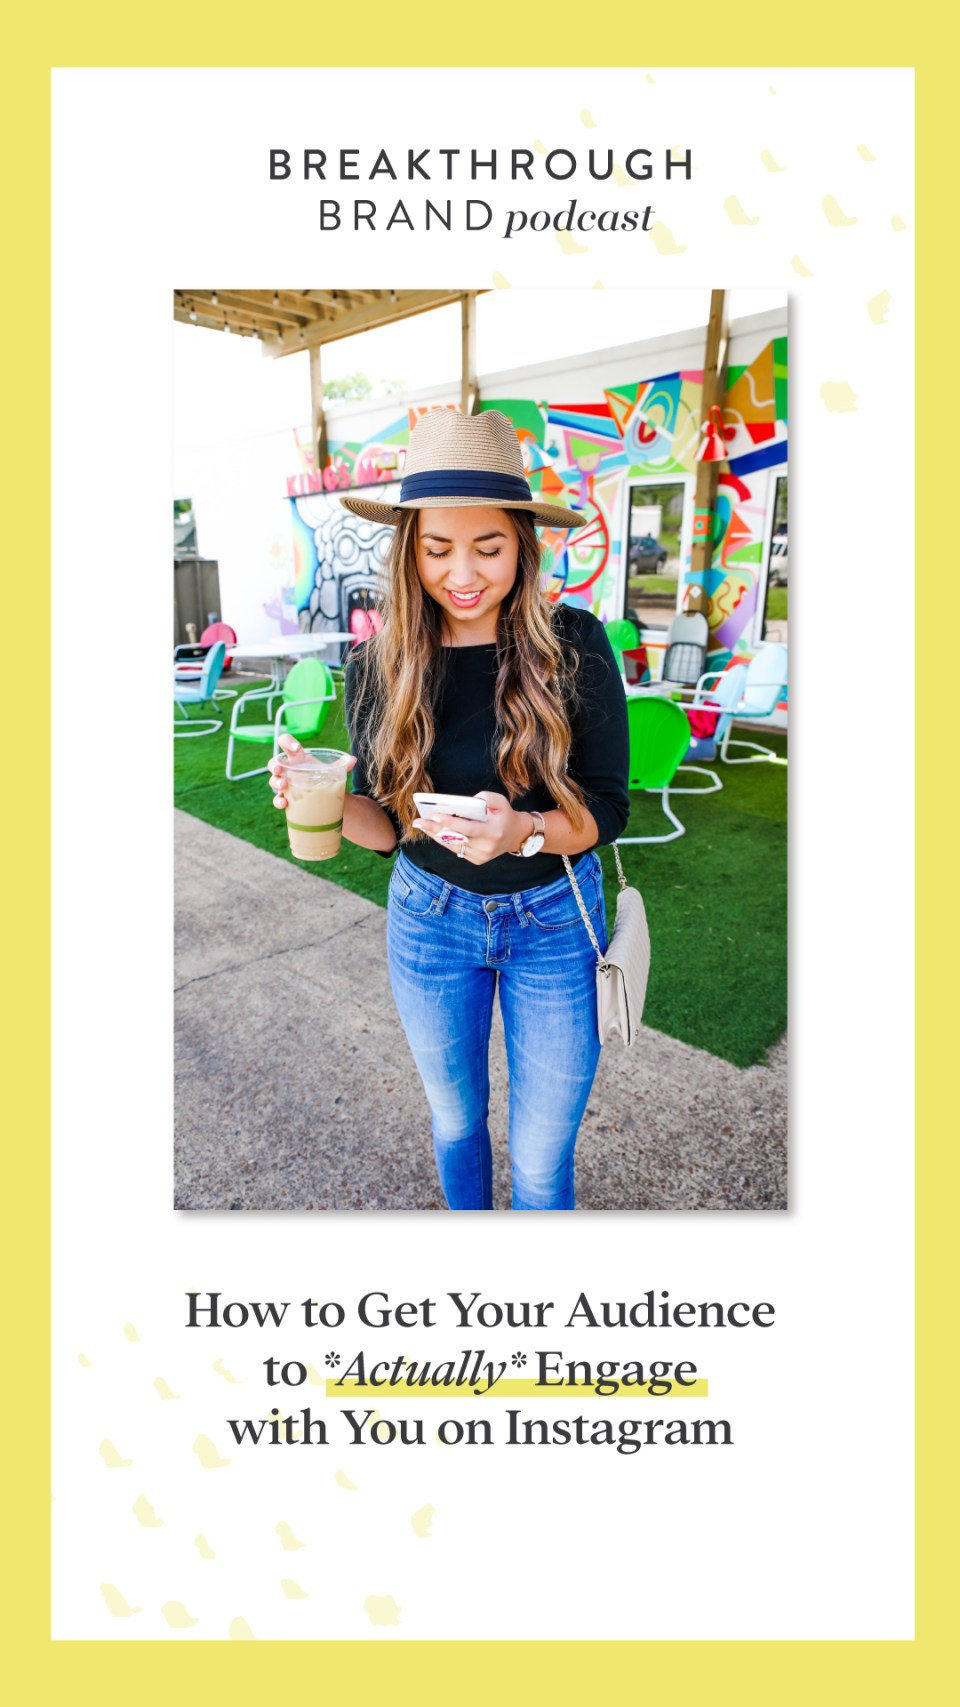 Learn how to get your audience to actually engage with you on Instagram. We're talking about 5 ways to get more comments, more DMs and overall more interaction from your followers.